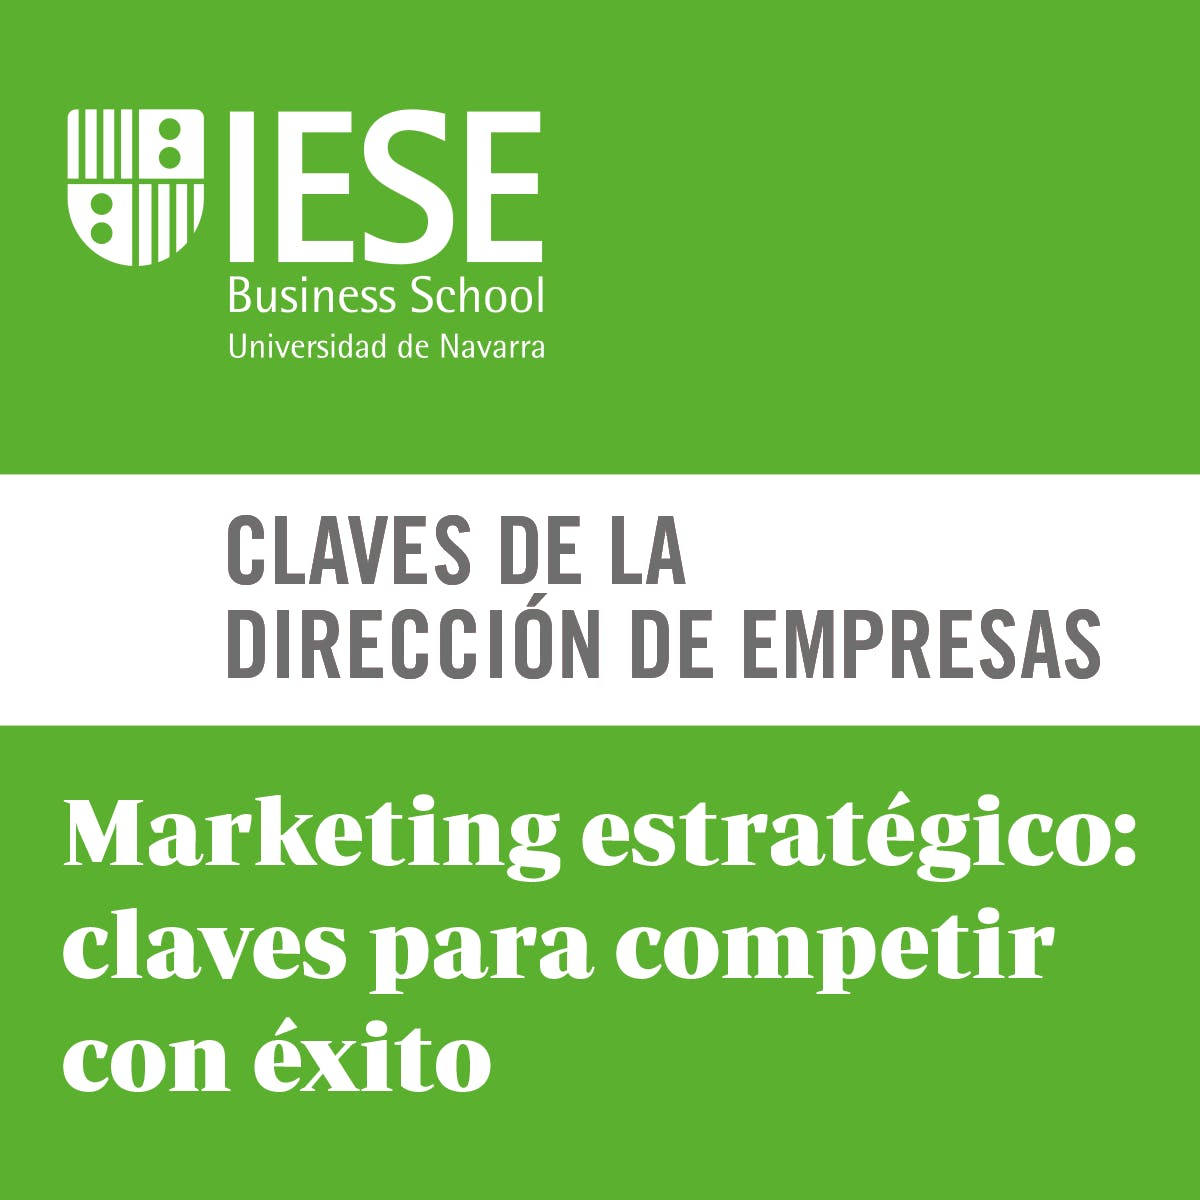 Marketing estratégico: claves para competir con éxito